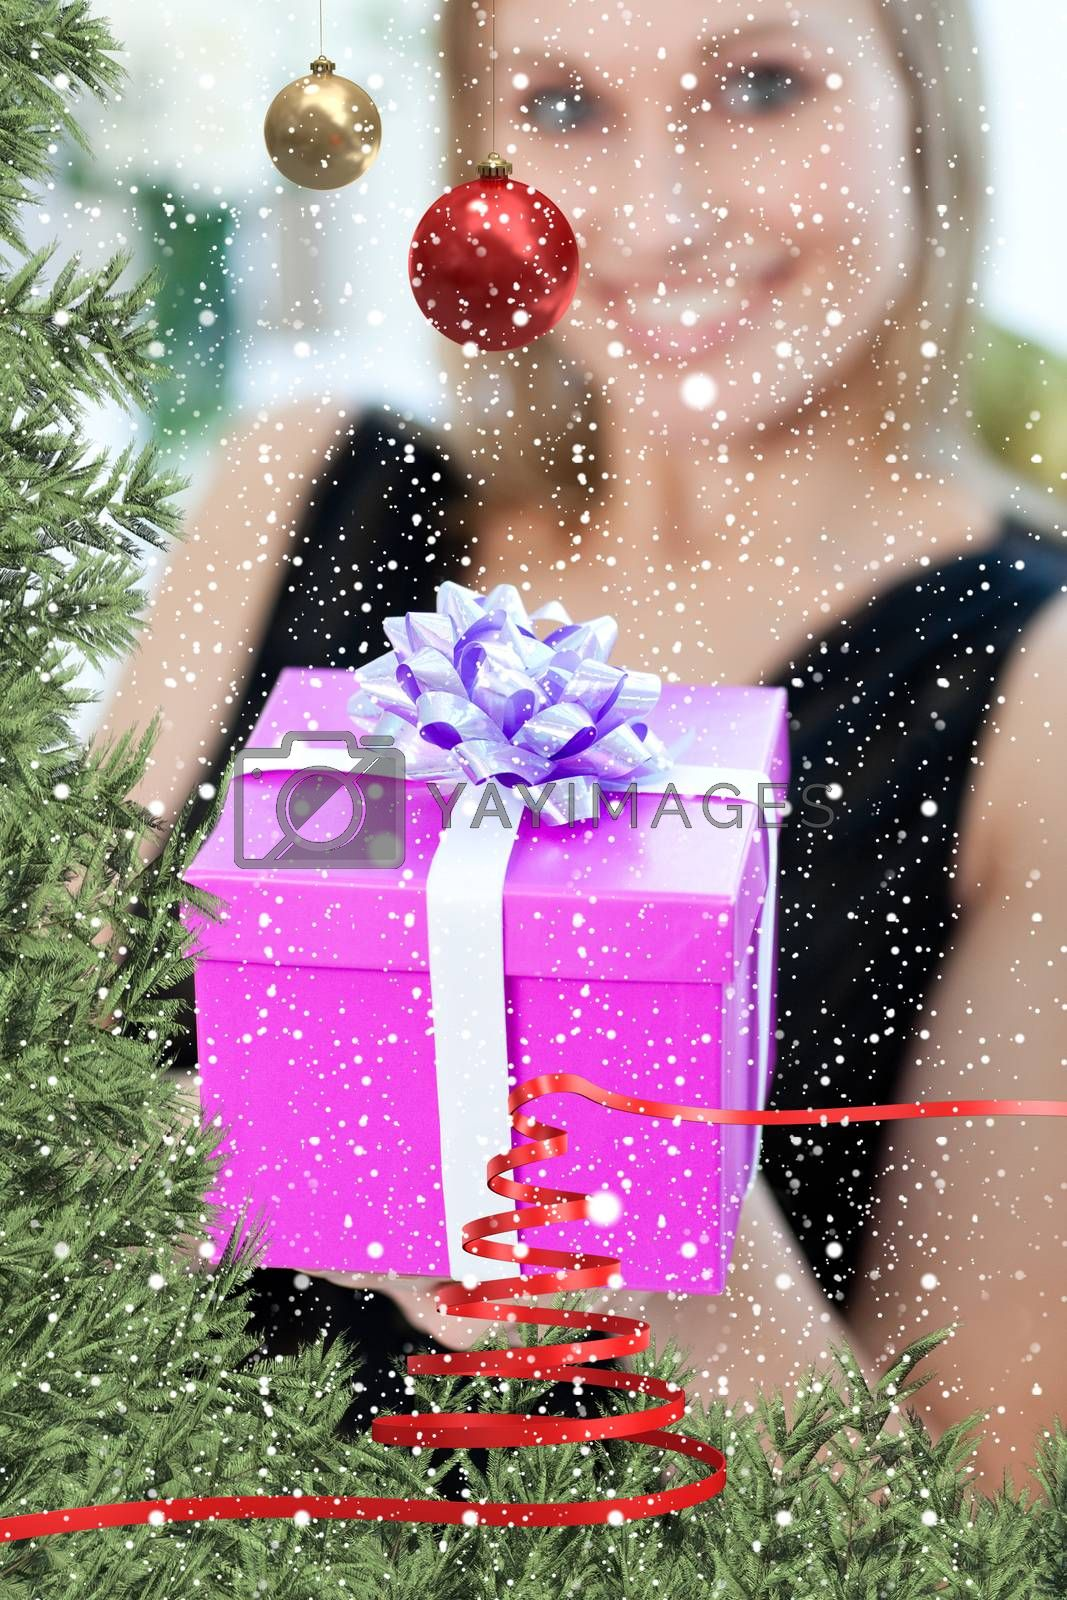 Blond woman opening a gift sitting on a sofa against snow falling